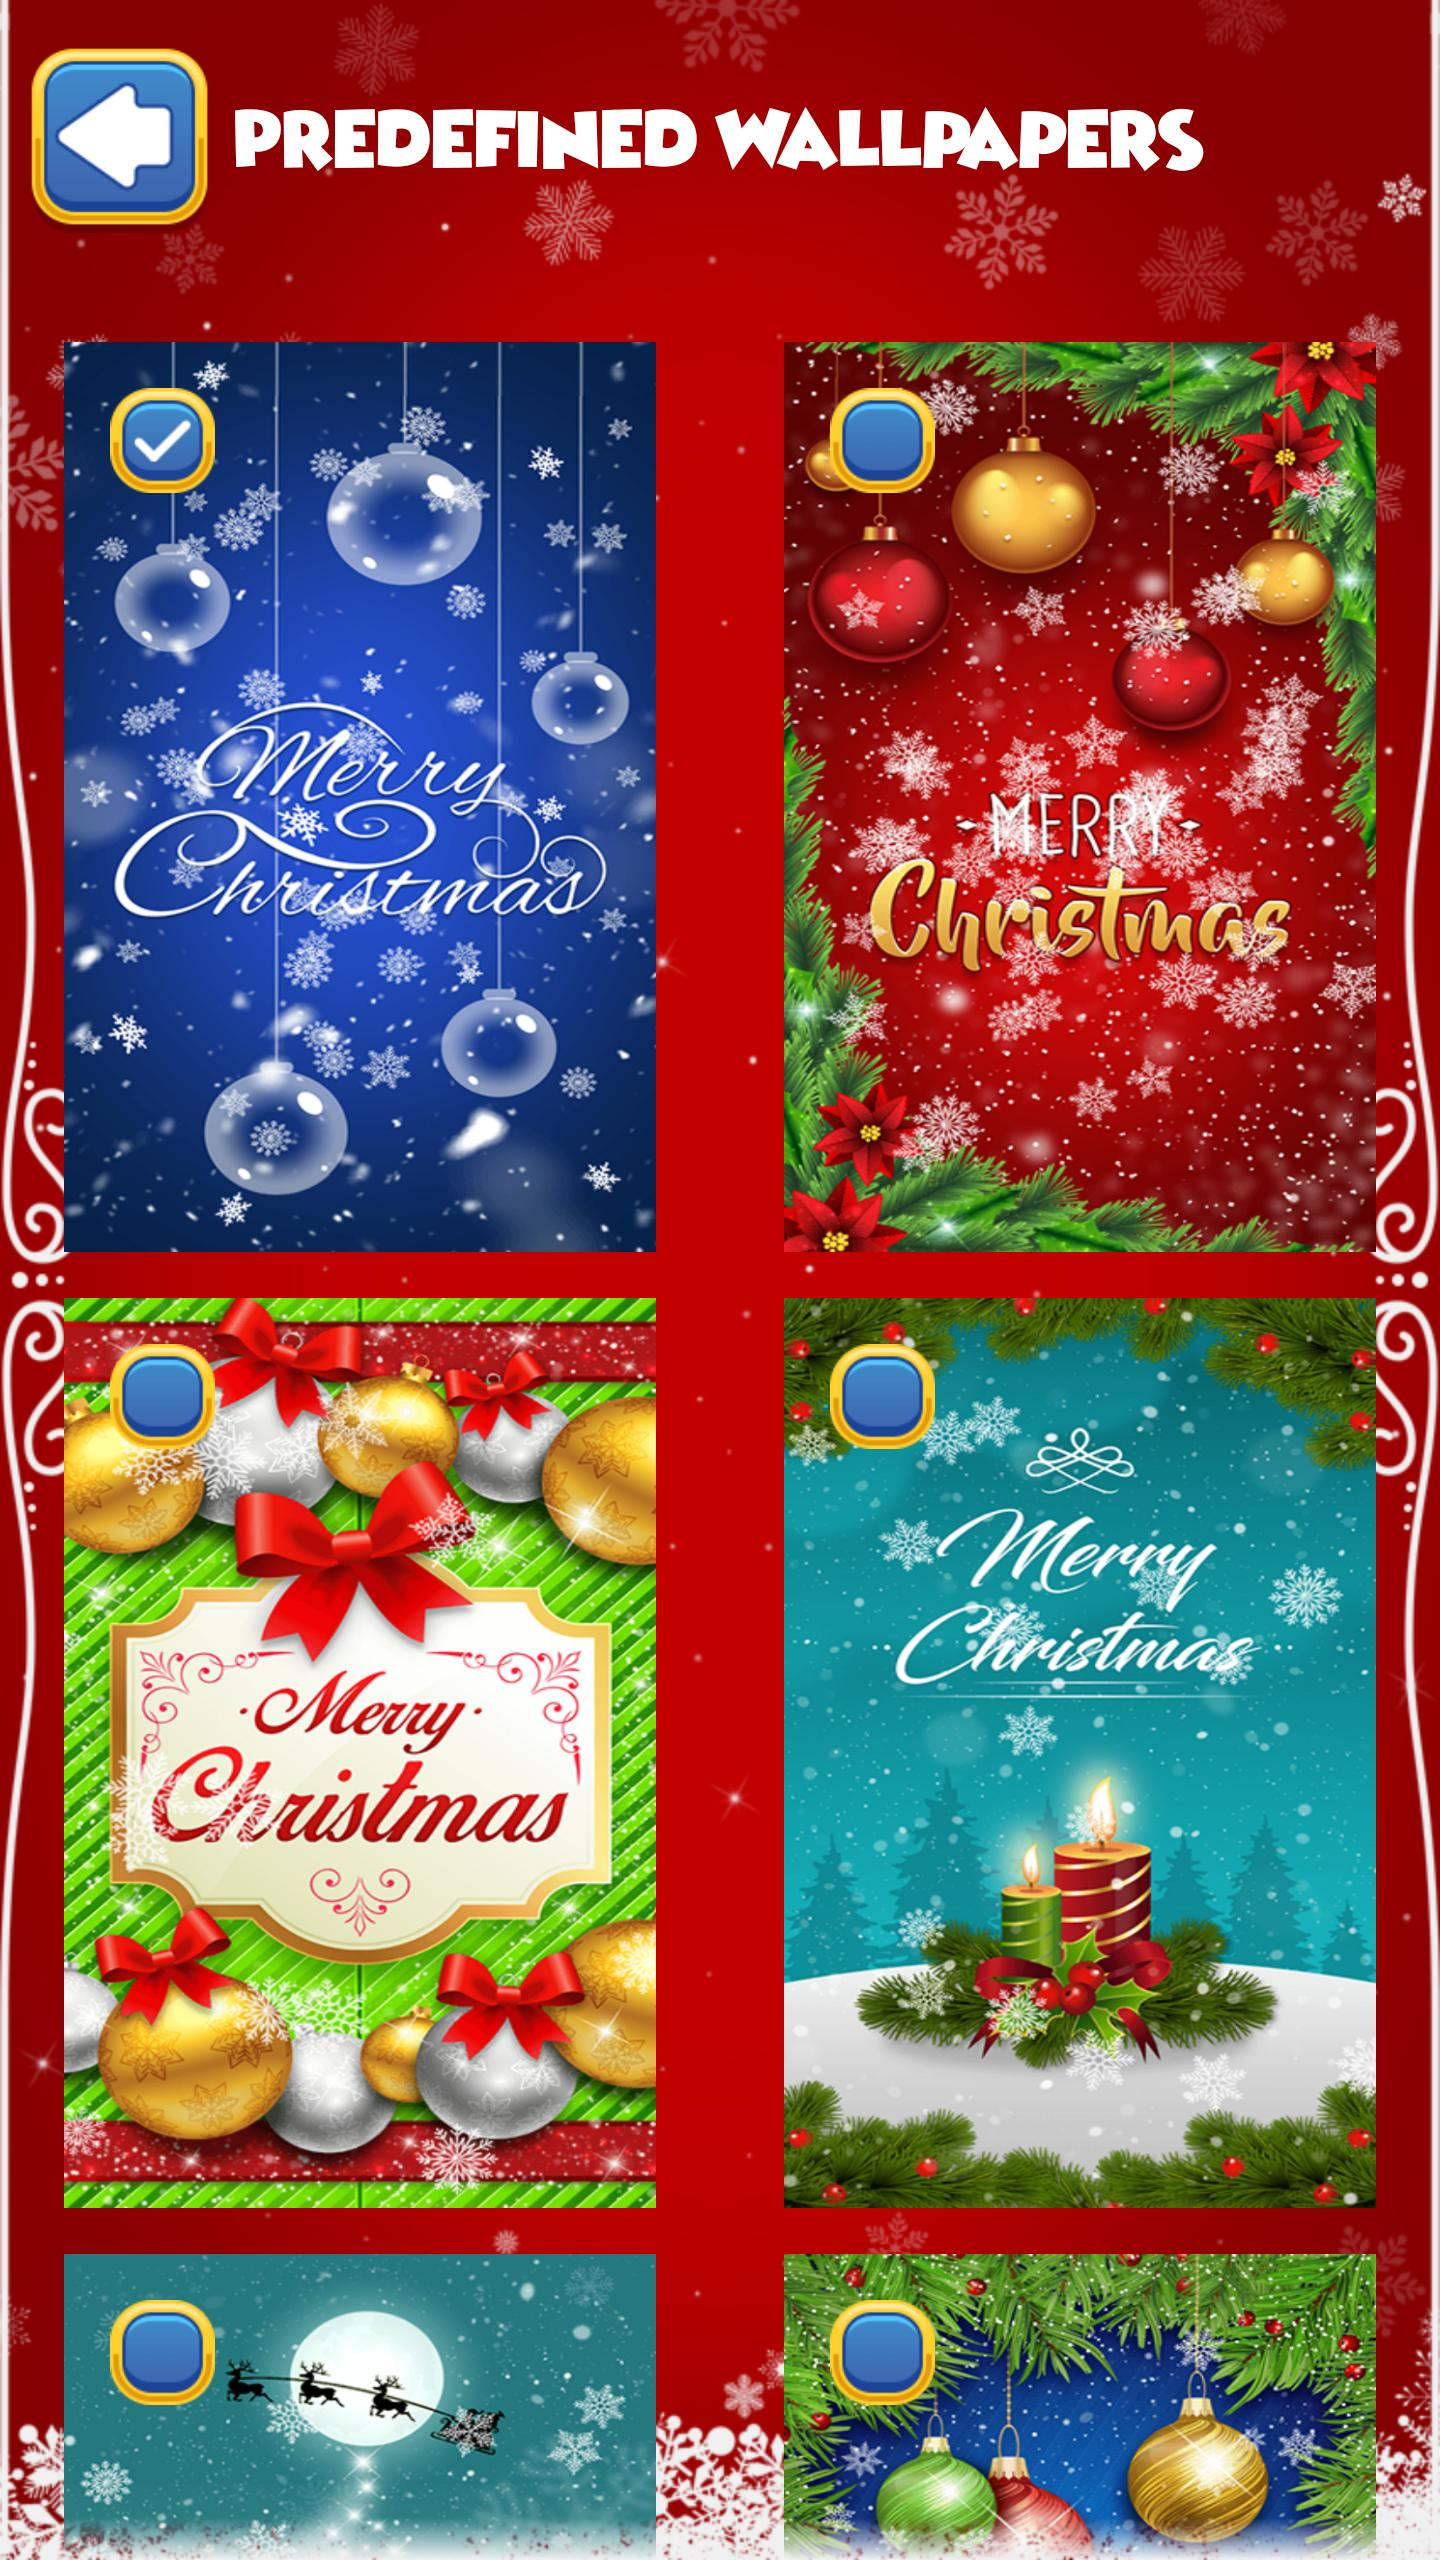 Sfondi Animati Natalizi Android.Sfondi Animati Natale Gratis For Android Apk Download